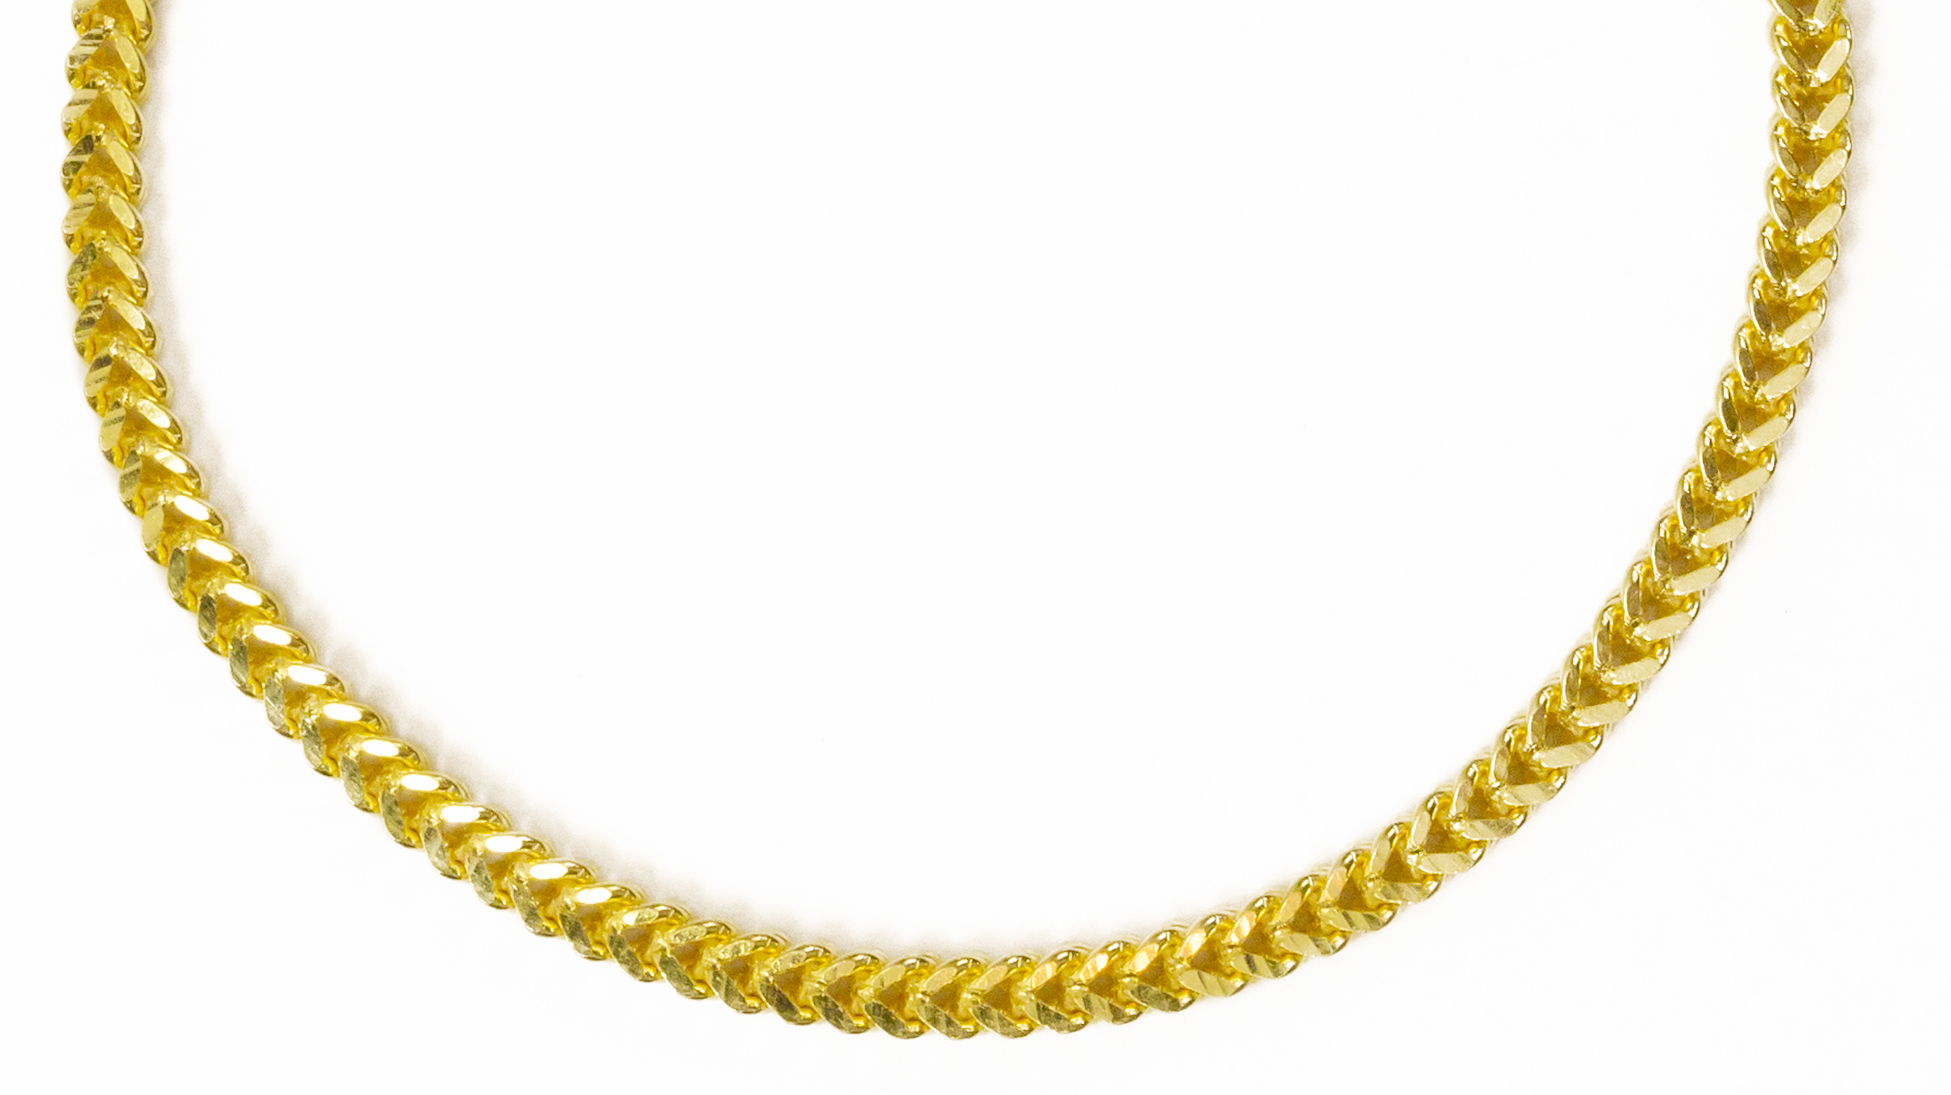 Buy Gold Bullion Jewelry Bracelet Online for sale at ...